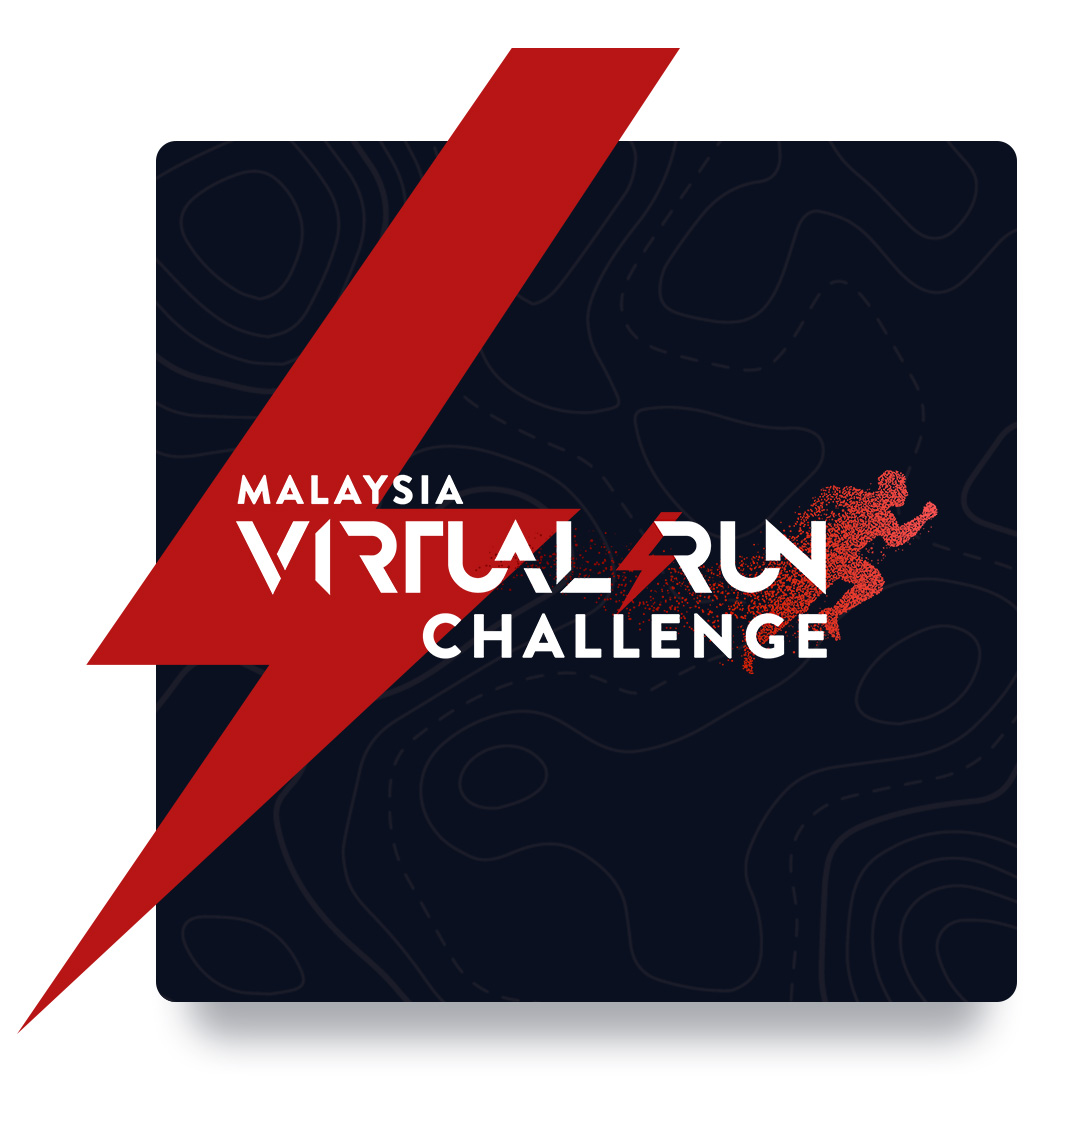 Logo of Malaysia Virtual Run Challenge 2018